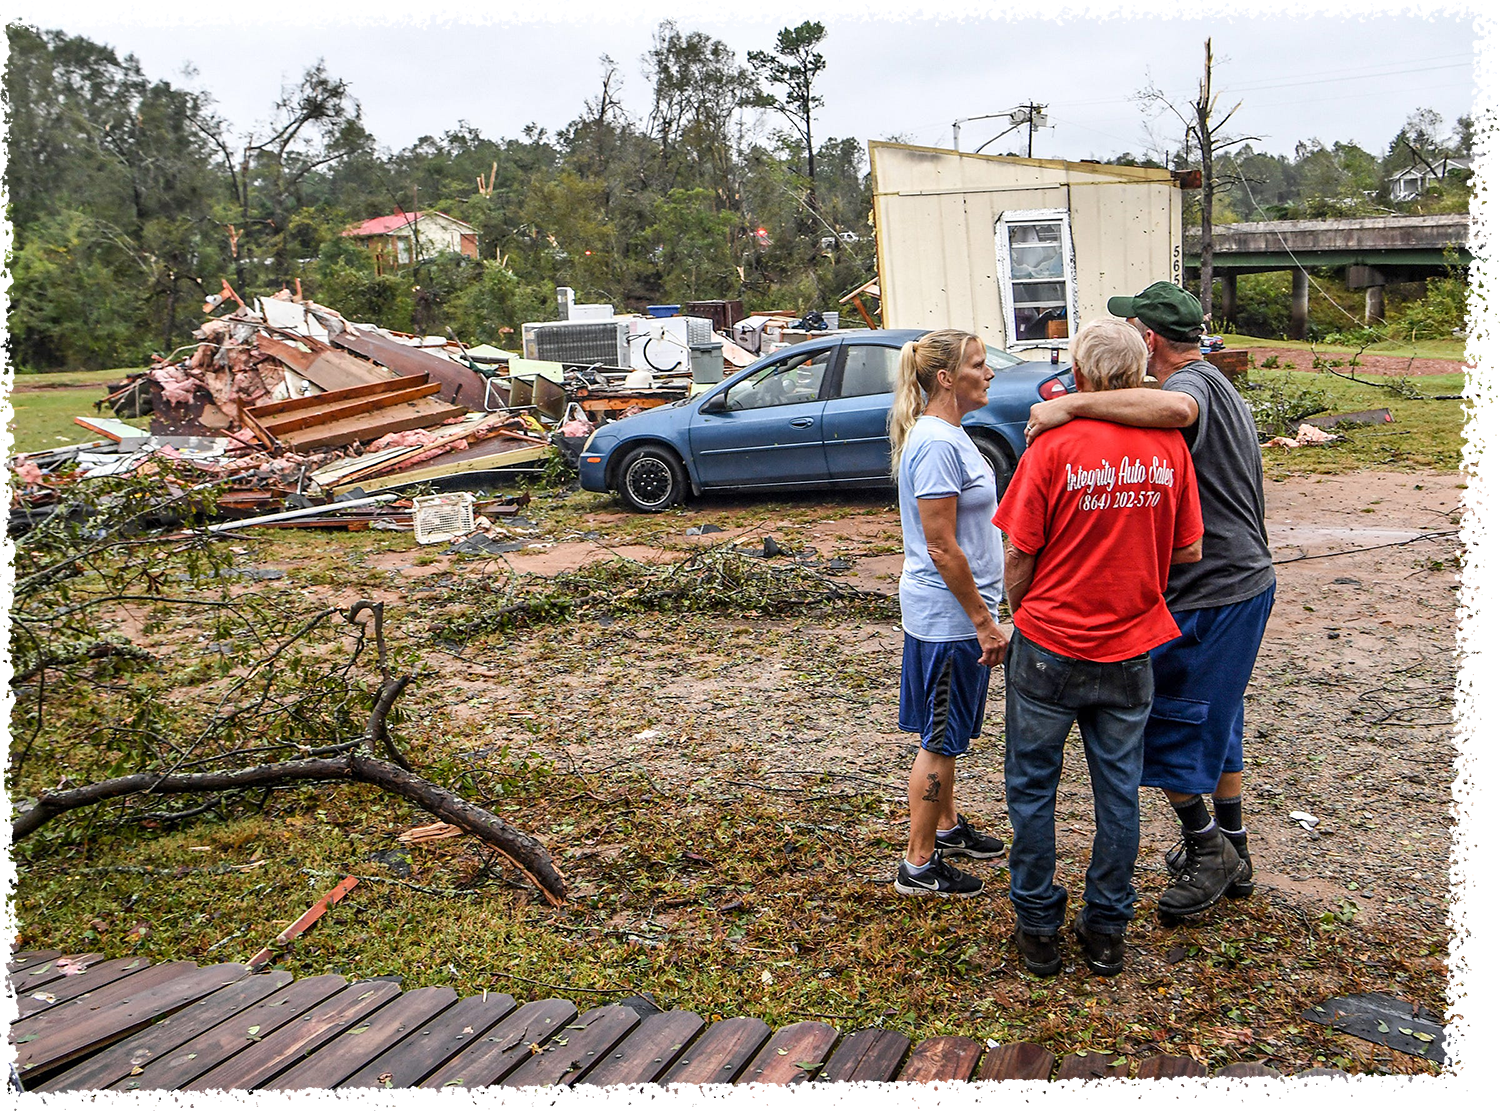 Larry Kelly, right, puts his arm around Jerry Edward Johnston of Central near Kathleen Kelly, left, at the steps of his home on Robinson Bridge Road in Central, S.C., on October 9, 2017.